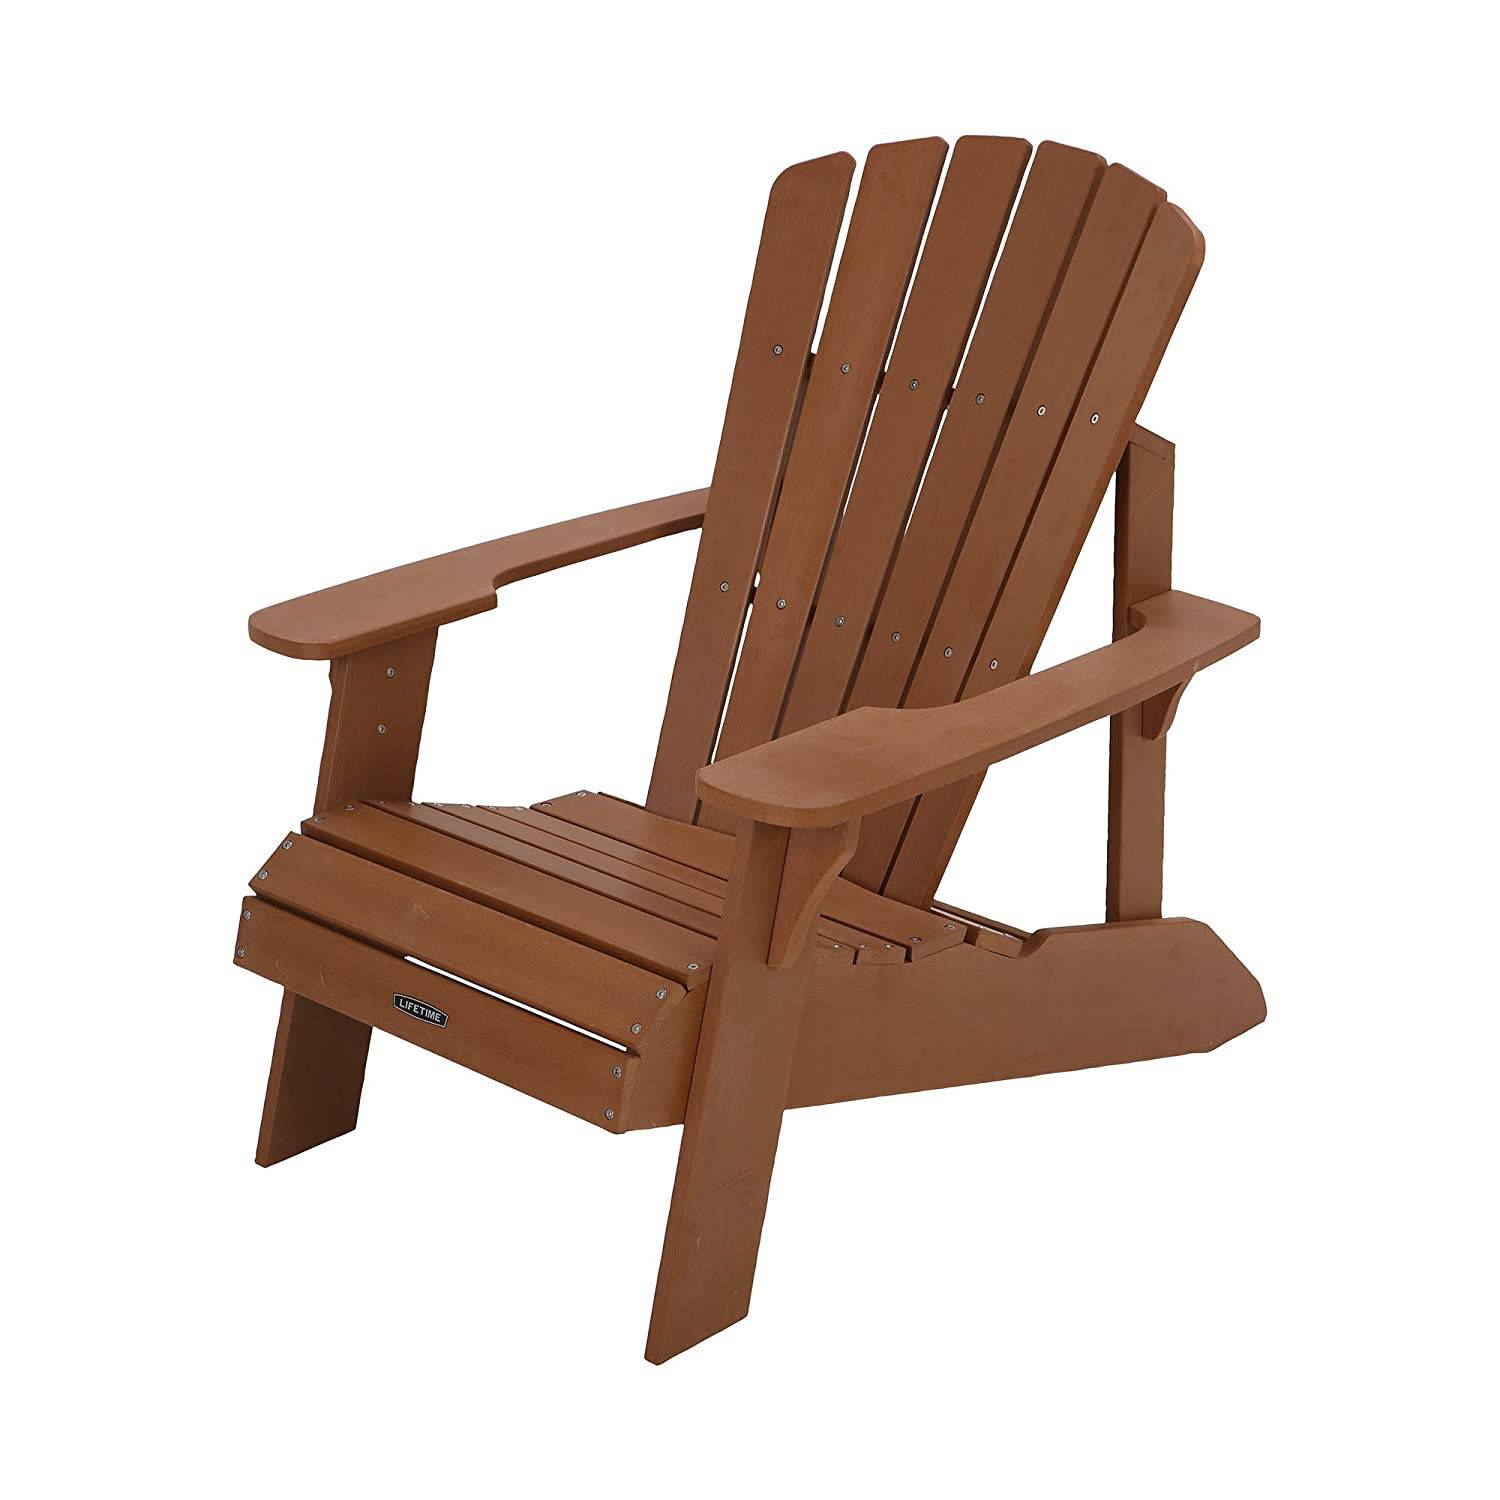 Amazon.com : Lifetime Faux Wood Adirondack Chair, Light Brown ...